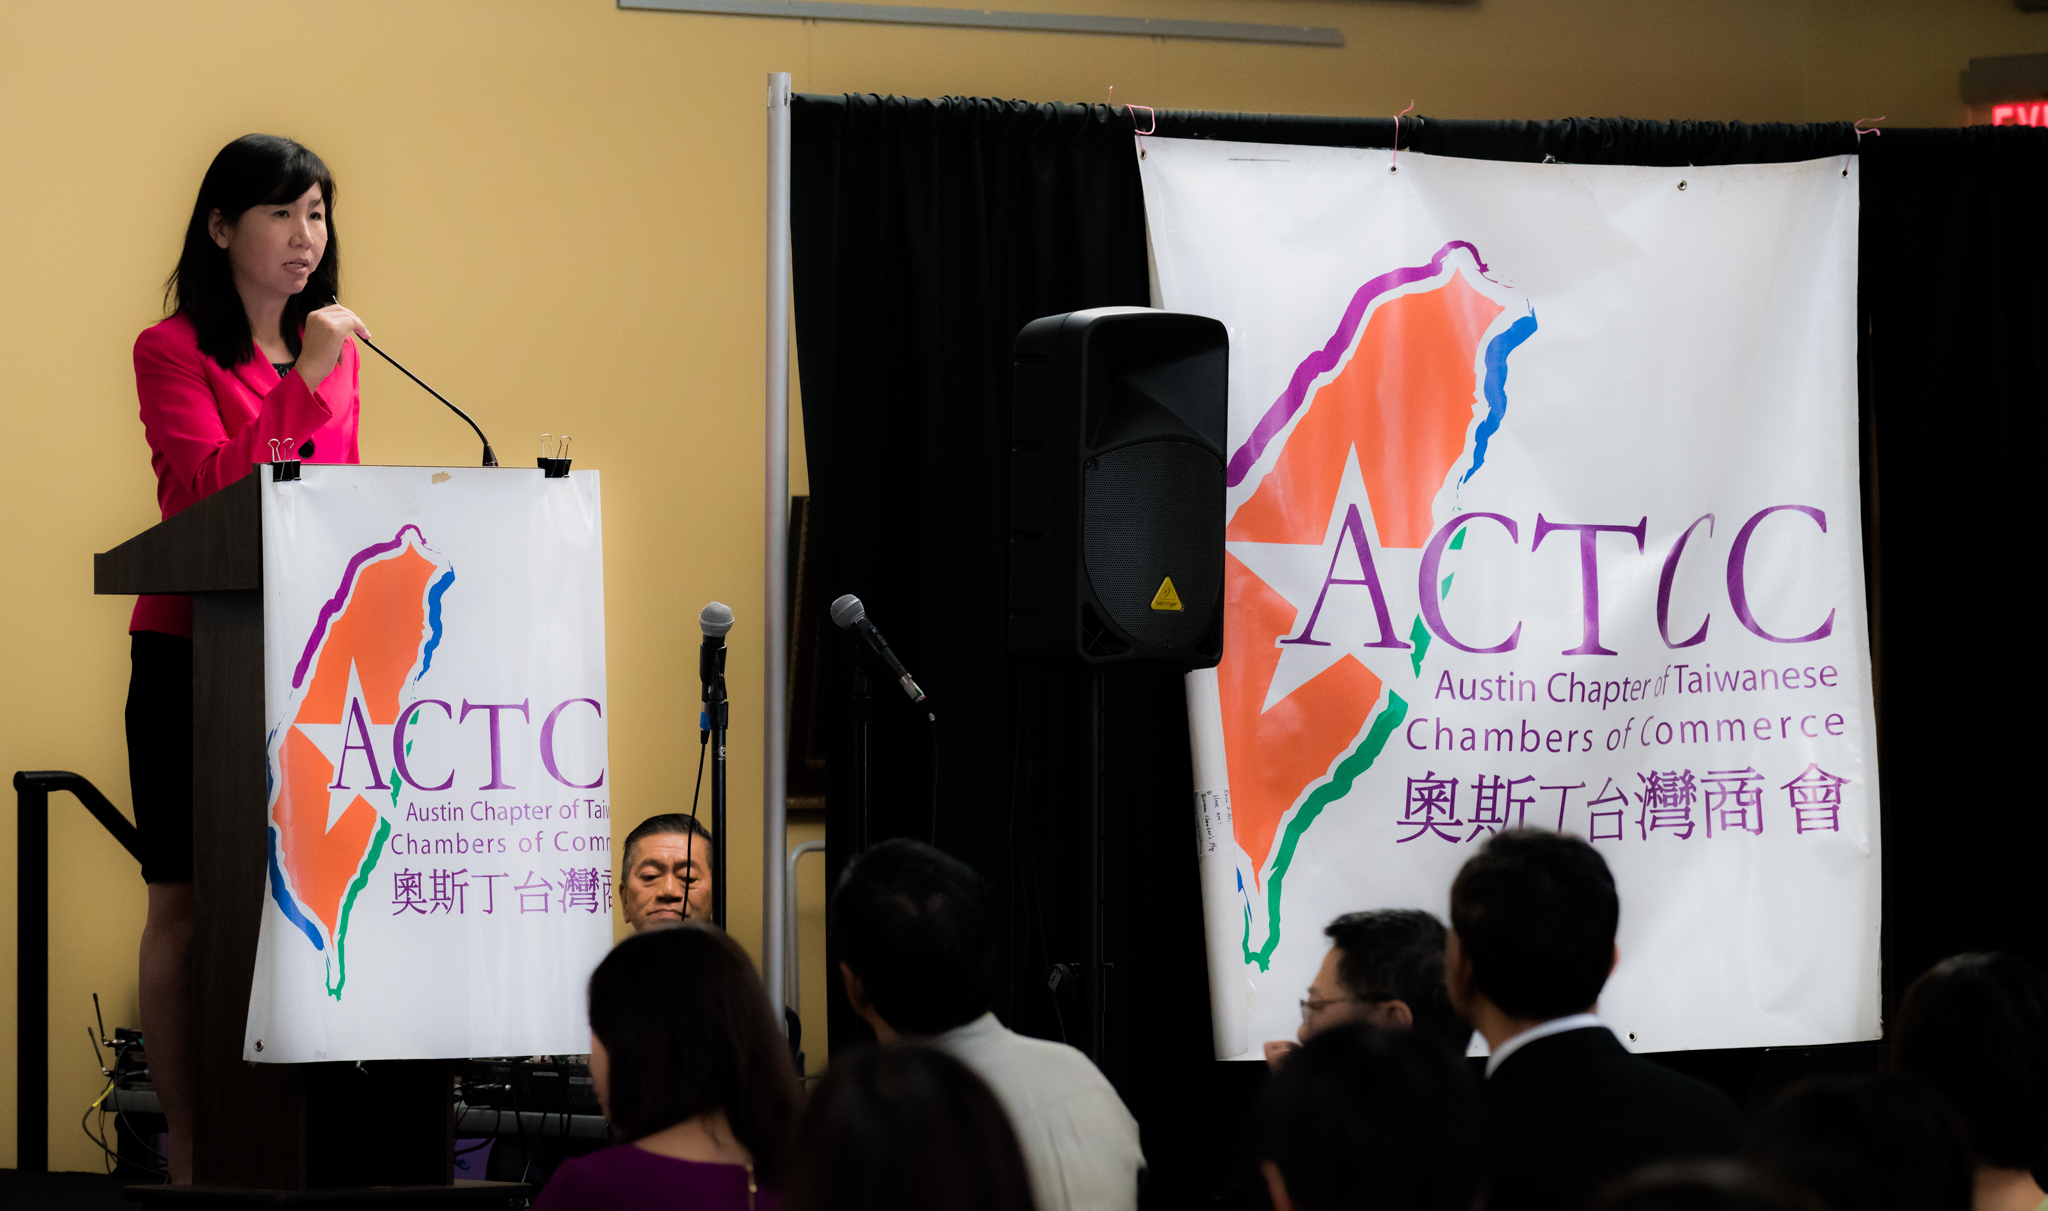 https://0201.nccdn.net/4_2/000/000/009/44a/29OCT2016---ACTCC-TW-National-Day-Celebration-at-AARC-4.JPG